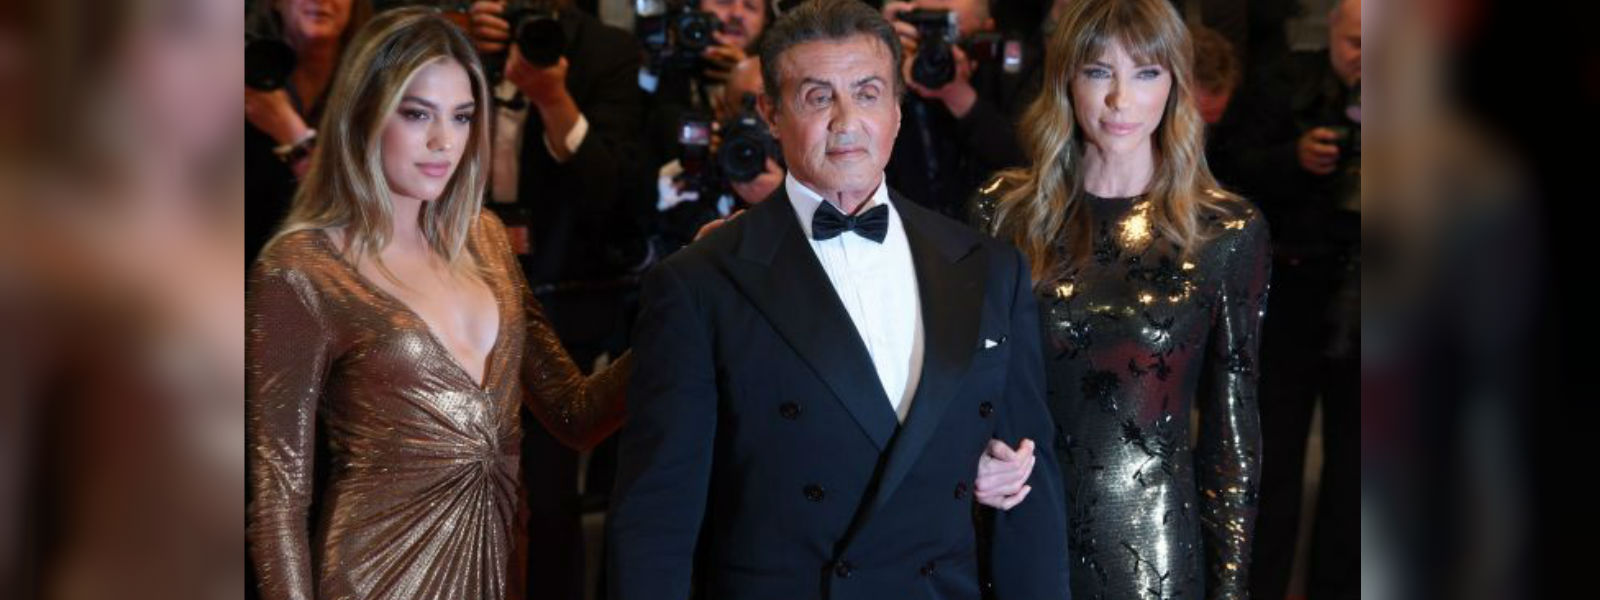 Action superstar Sylvester Stallone celebrated at Cannes